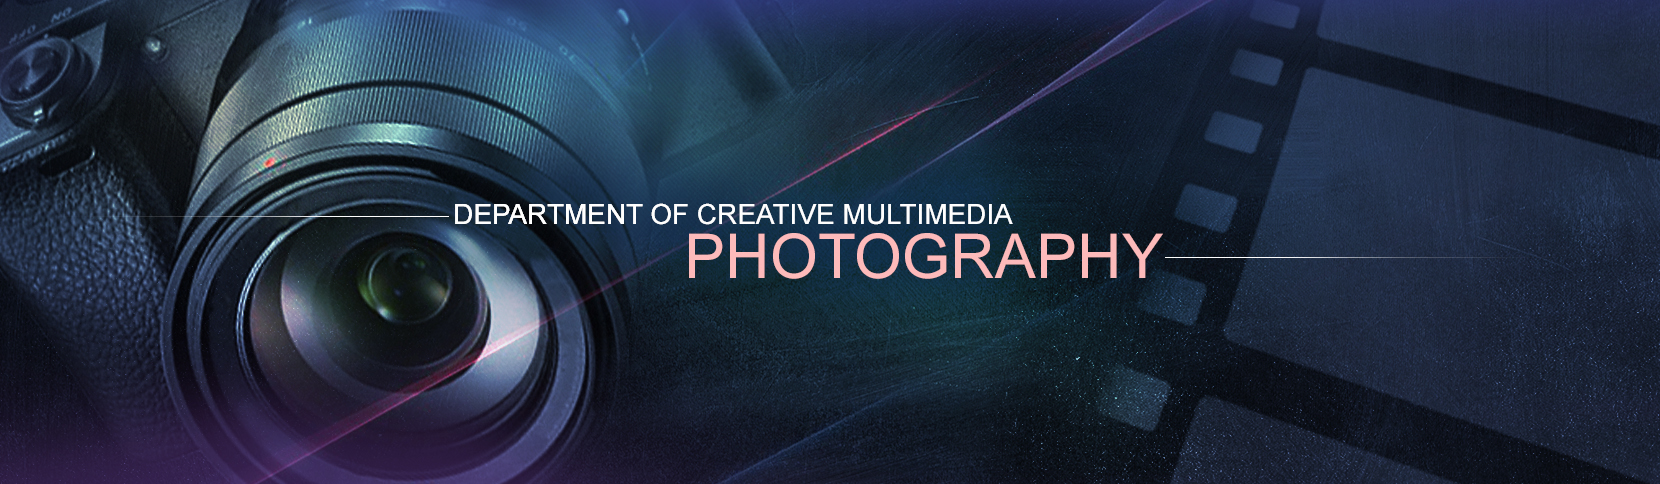 Creative Multimedia Photography